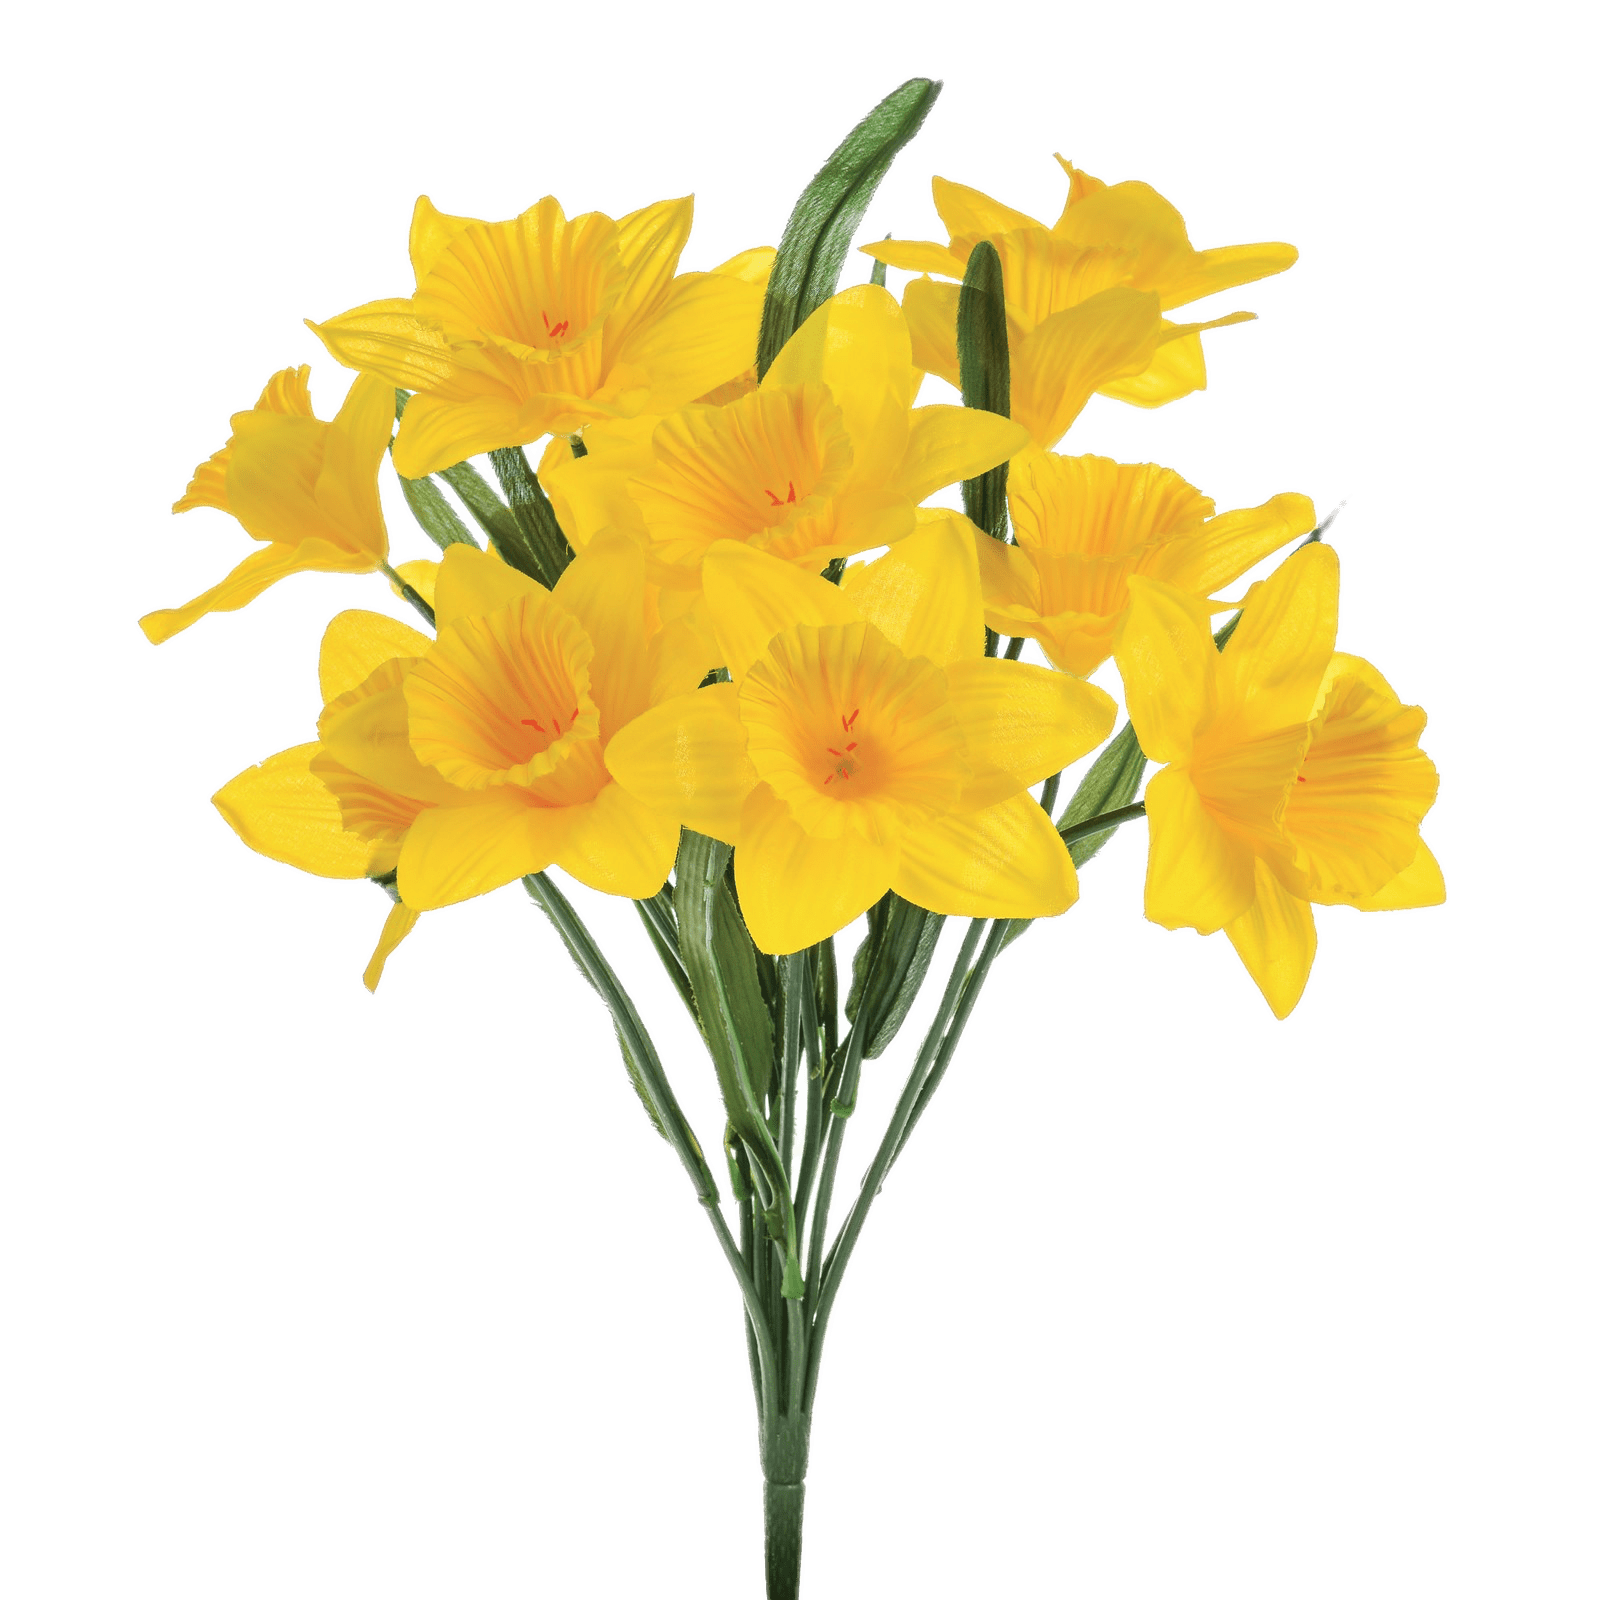 Artificial Daffodils - Daffodils, Transparent background PNG HD thumbnail